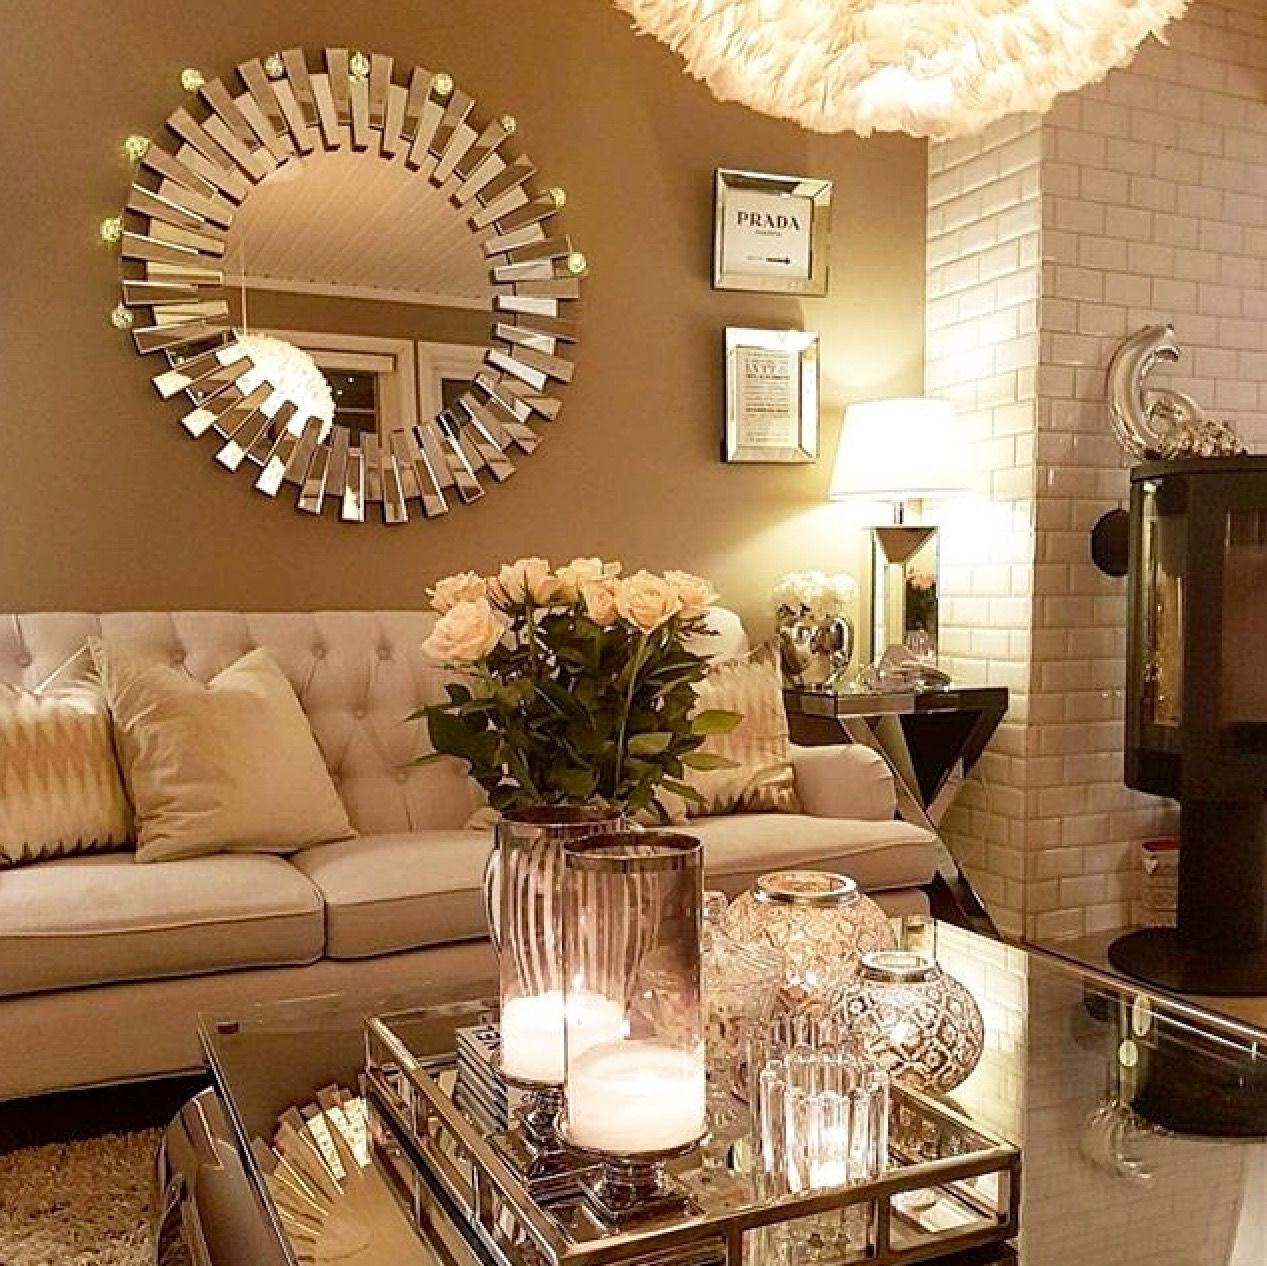 Pin by ♡ T. LAYNE ♡ on Dream Rooms | Rose gold room decor ...